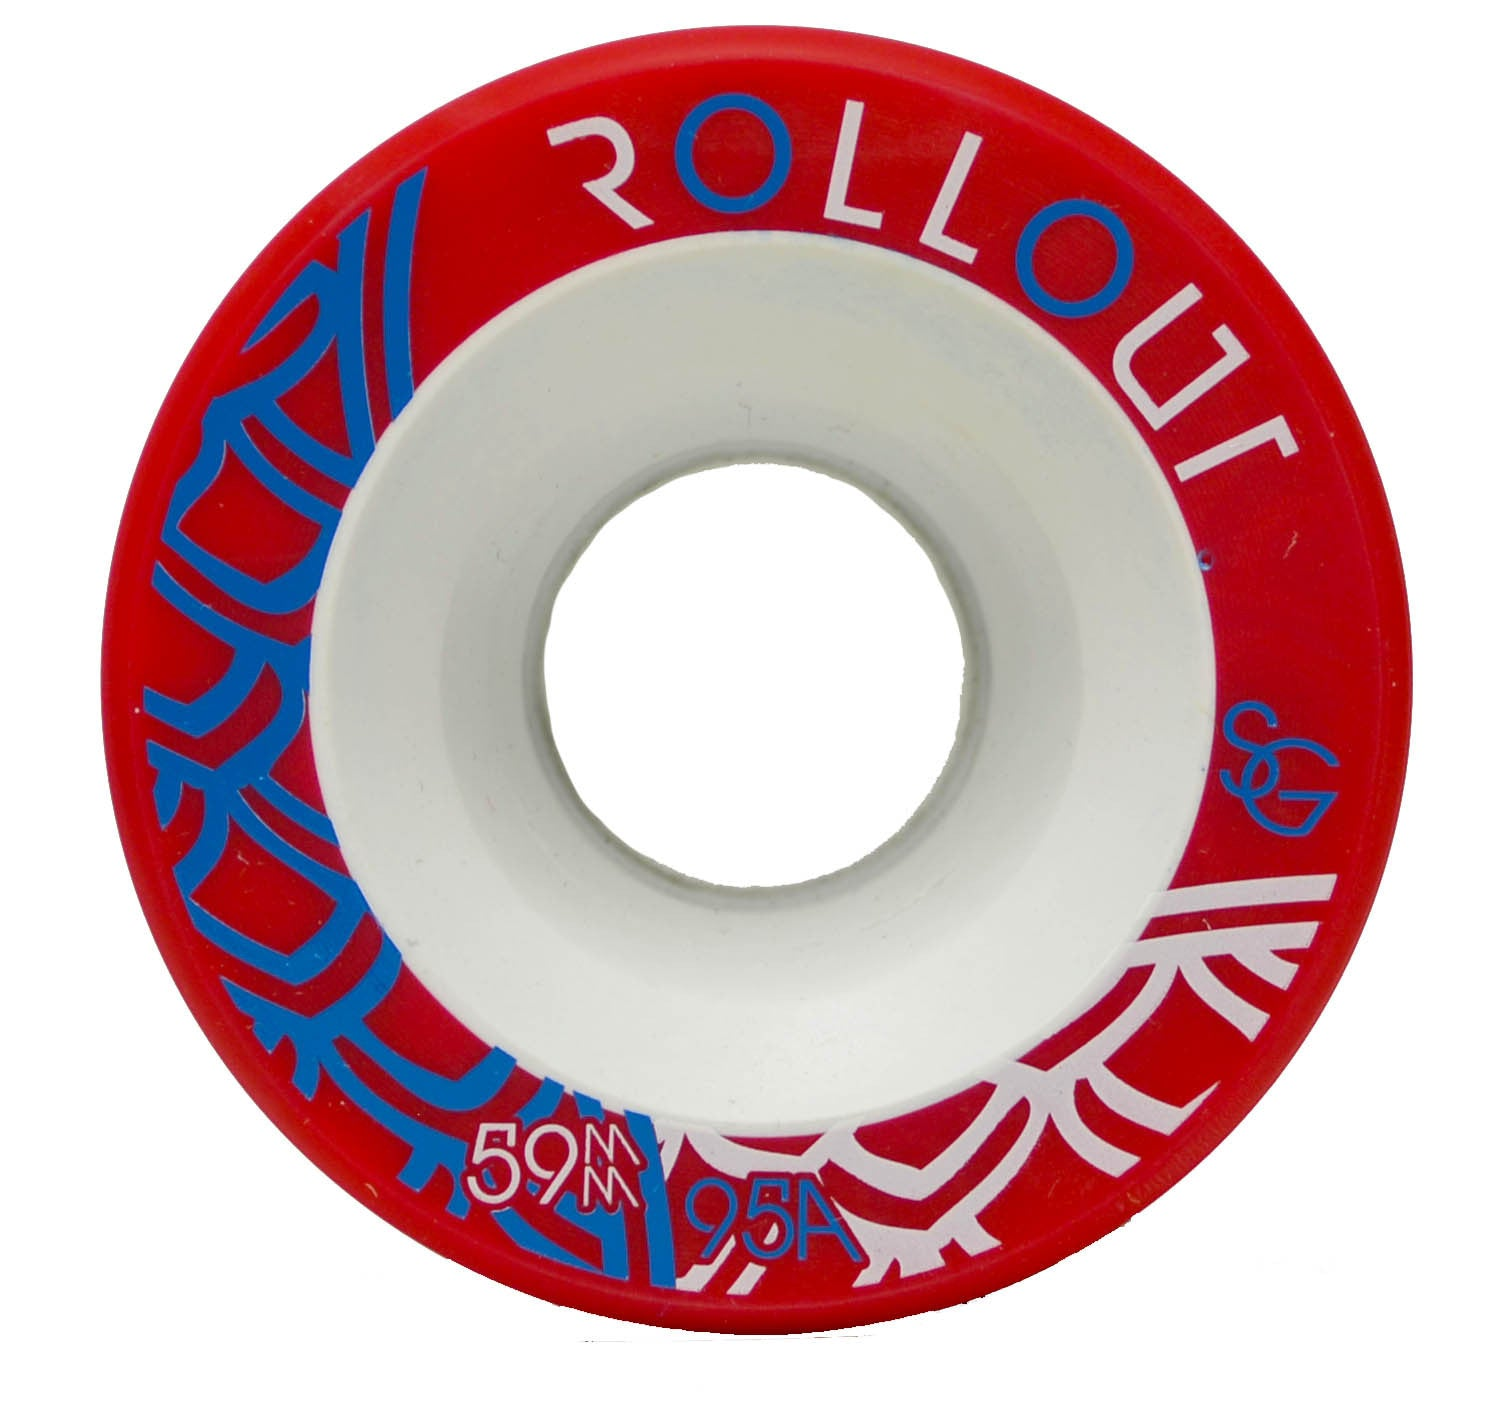 Sure Grip Rollout 59mm (4 pack)